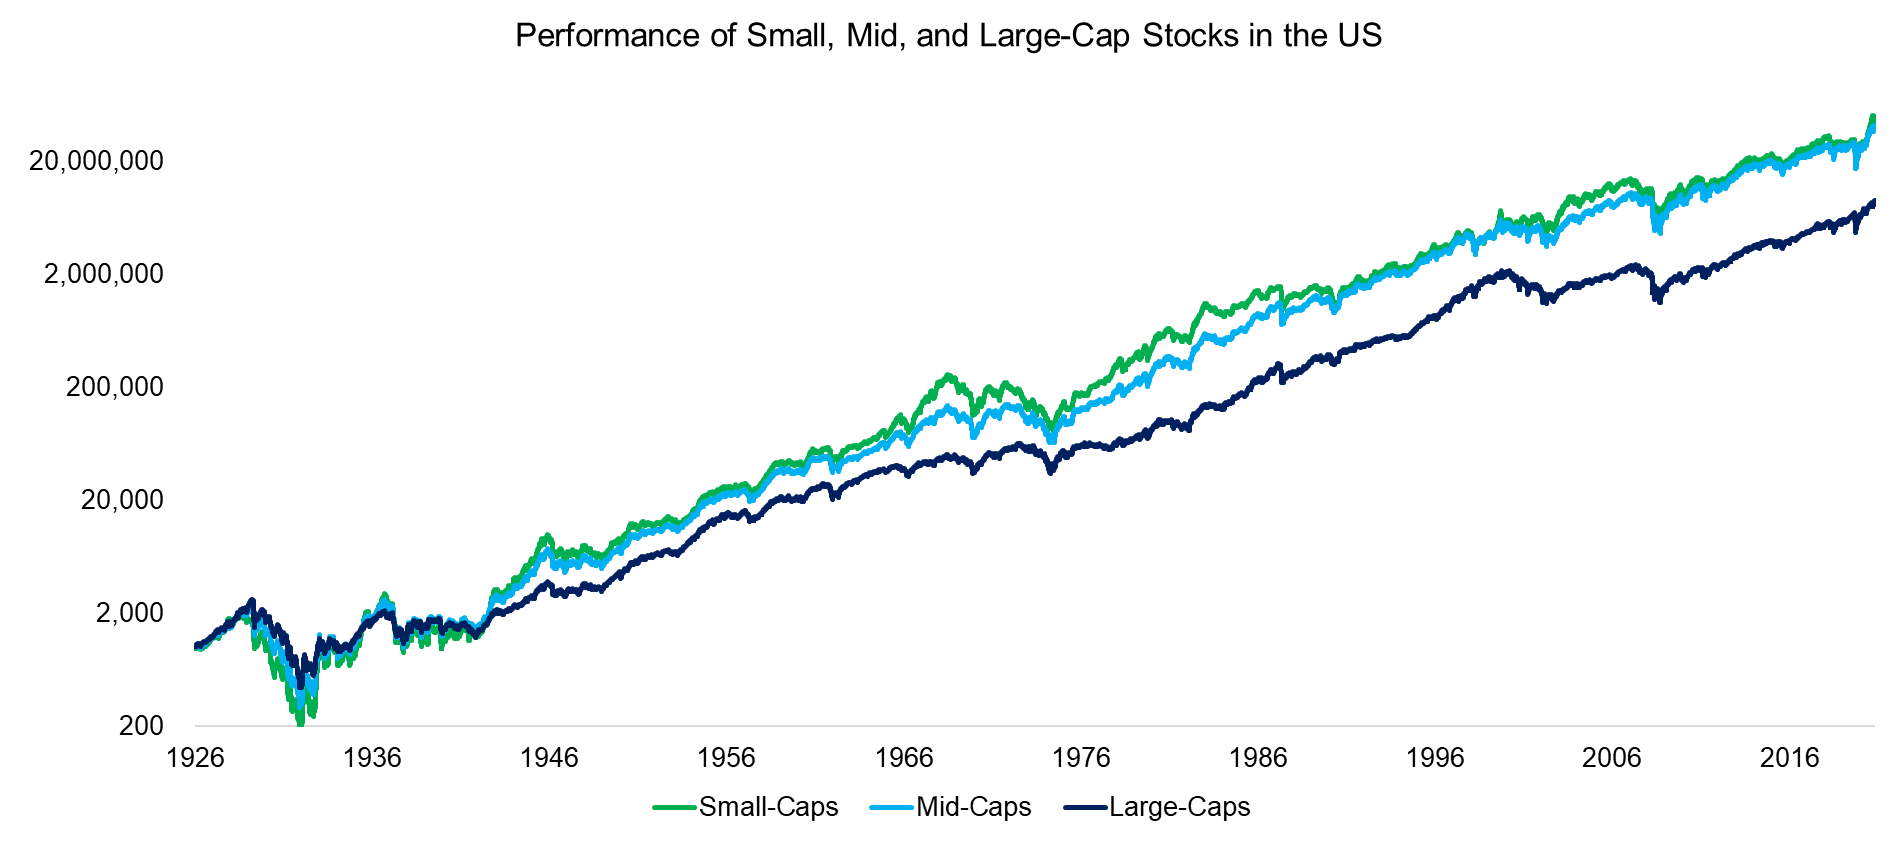 Performance of Small, Mid, and Large-Cap Stocks in the US